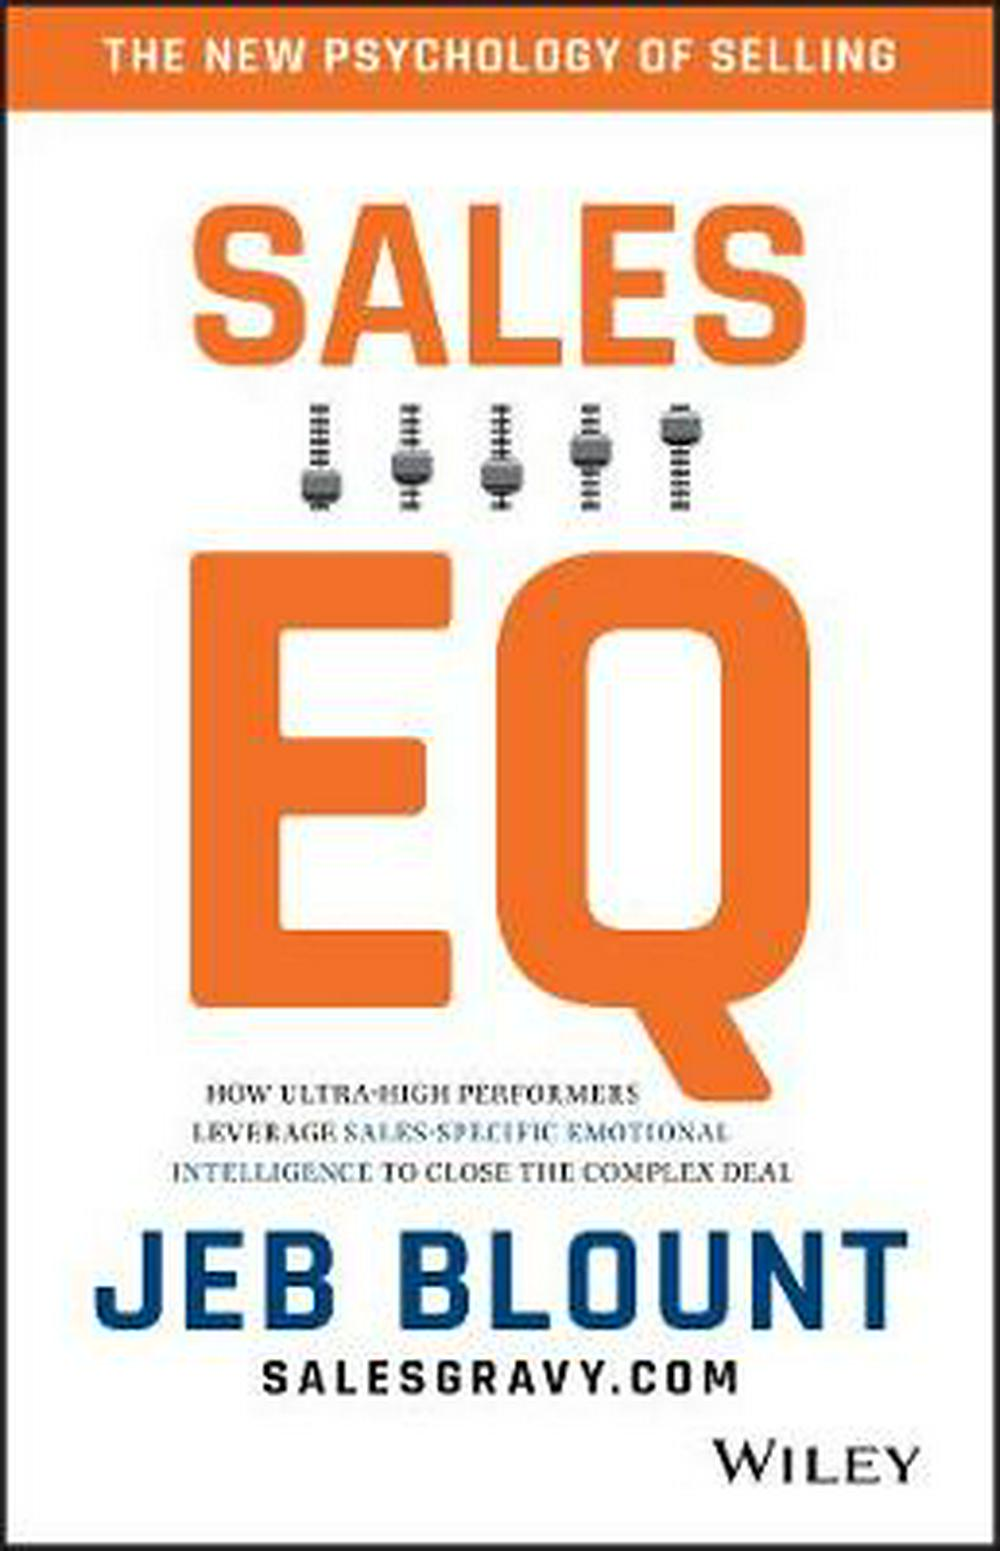 Sales EqHow Ultra High Performers Leverage Sales-specif...